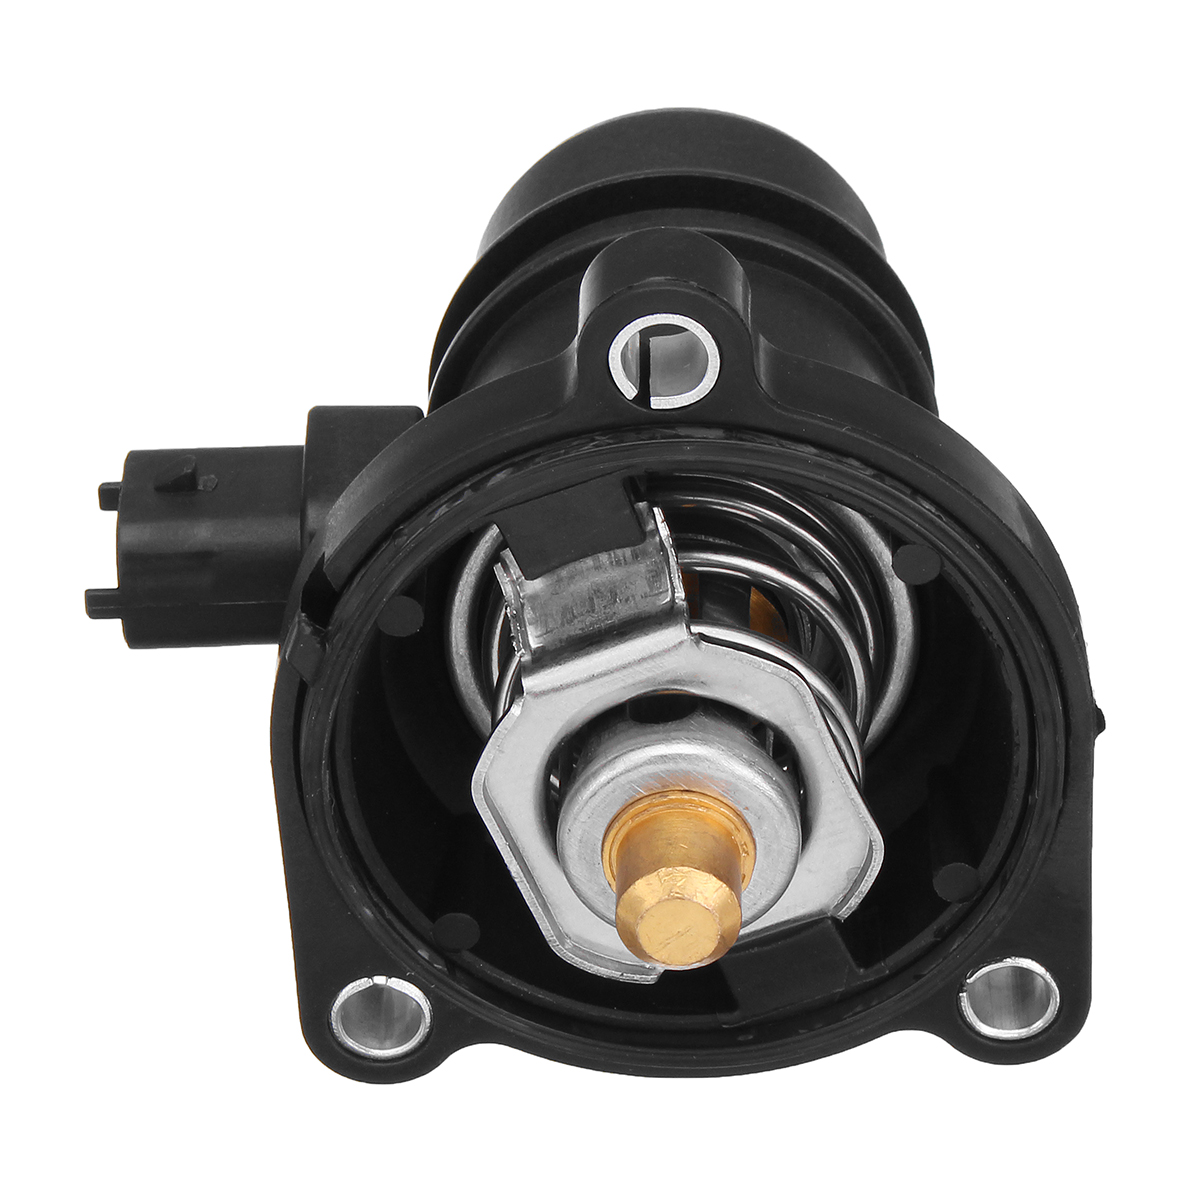 engine coolant thermostat with seal for vauxhall corsavan astra ·  9bd330b1-781c-49c6-83e4-56ff41bbb4d6